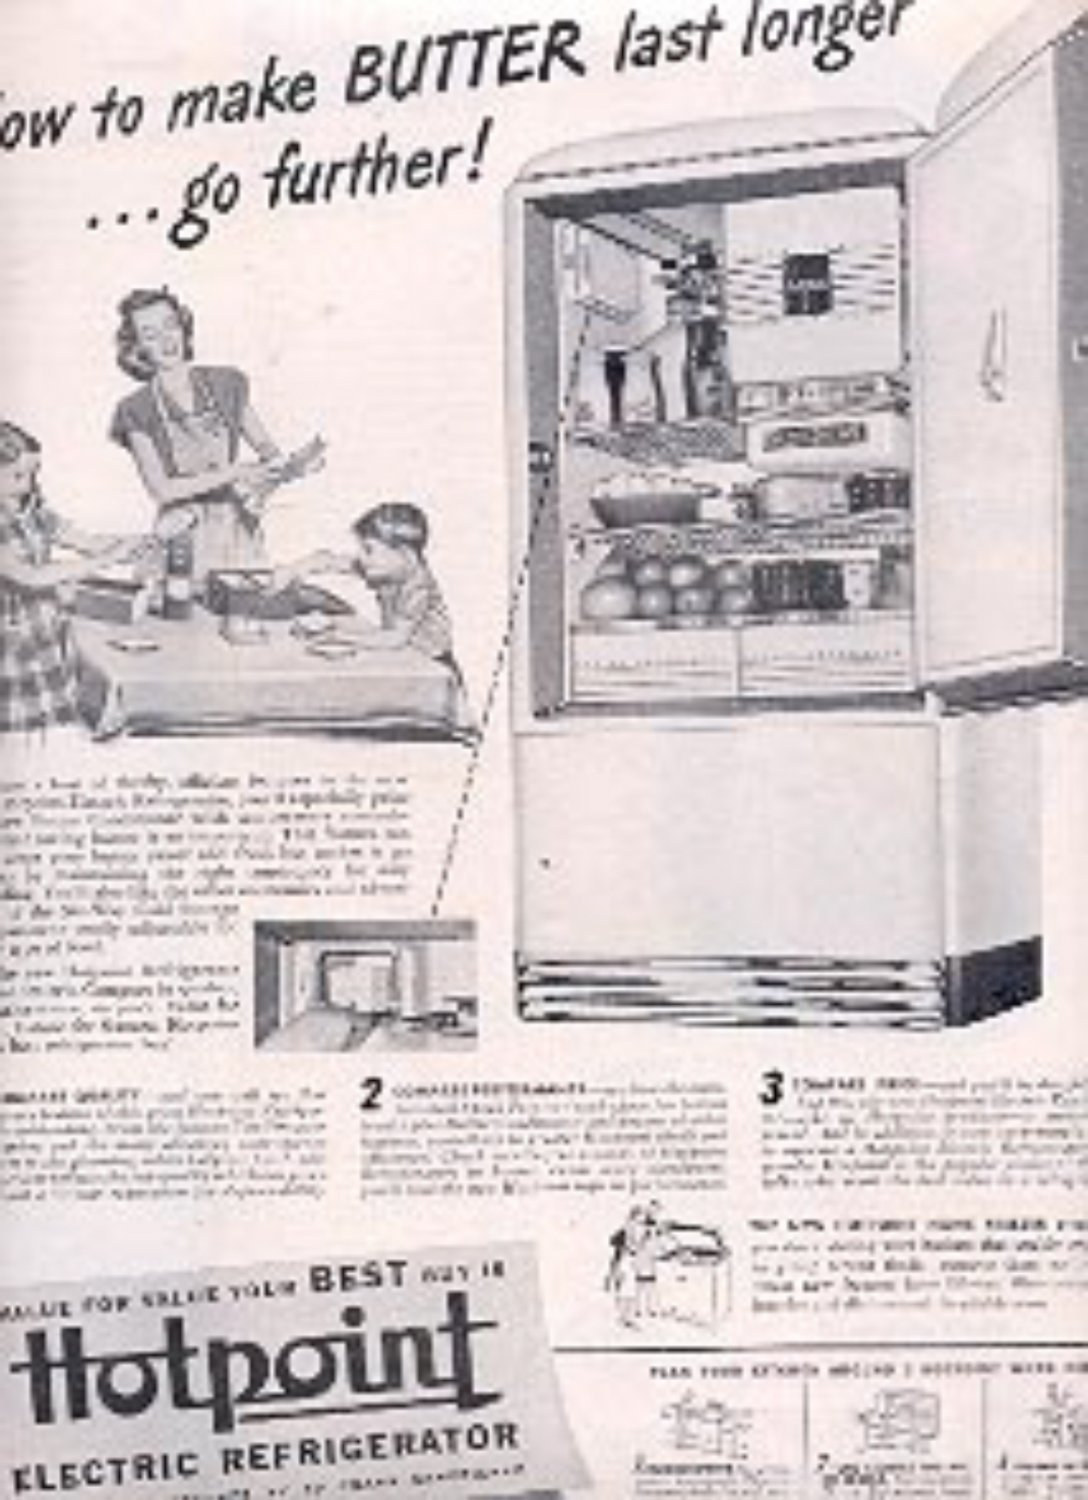 1946  Hotpoint Electric Refrigerator ad (# 2165)